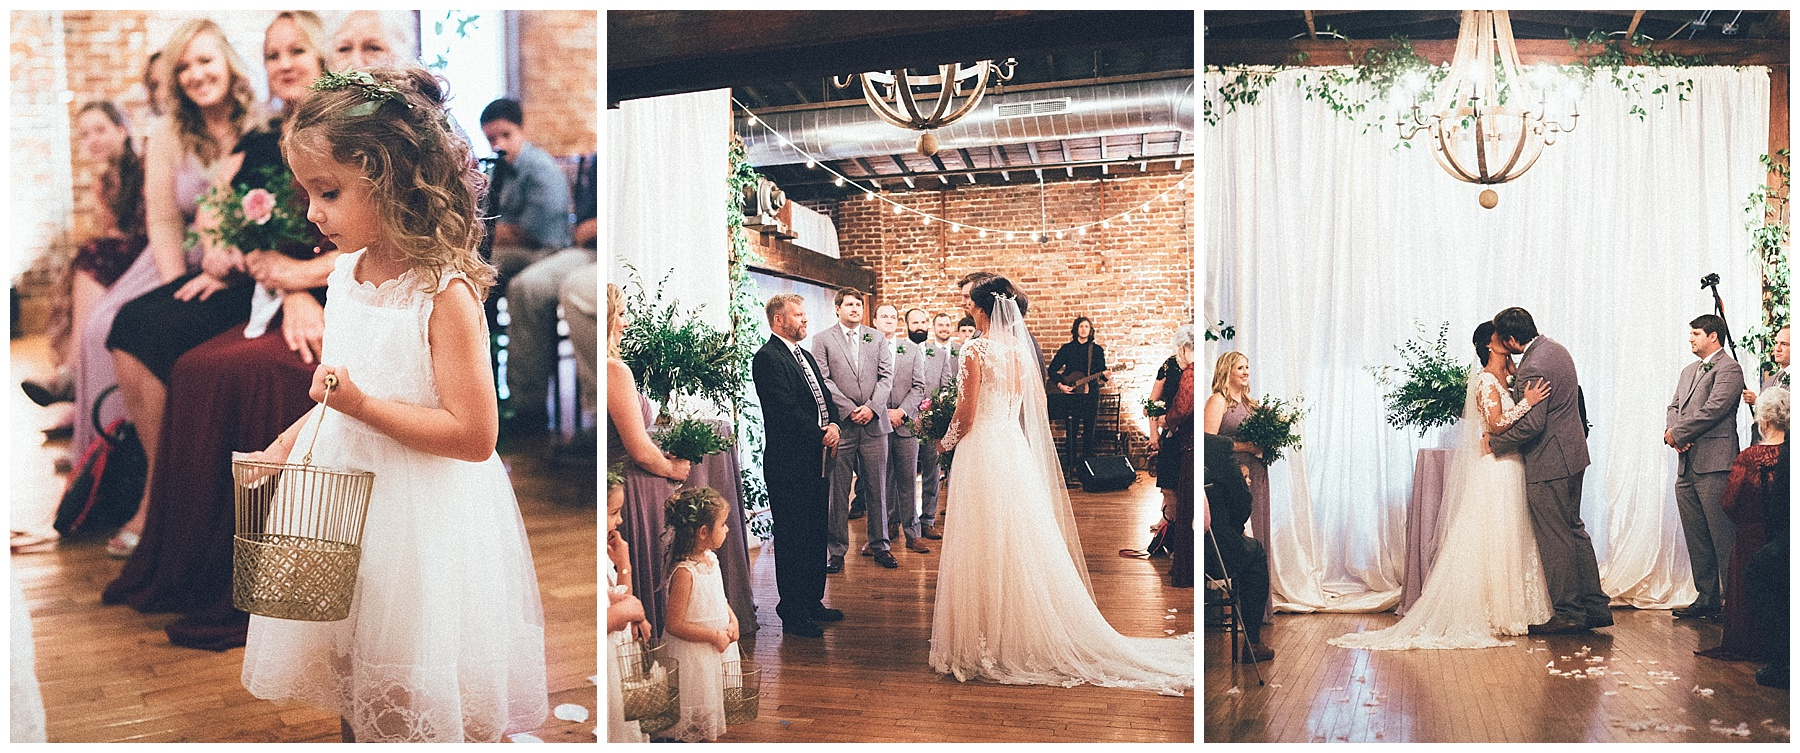 2018-01-23_0009 Emily & Marcus: A Cozy Nashville Wedding Blog Invision Events Weddings    invision_events, birmingham_al, auburn_al, alabama, atlanta_ga, atl, georgia, wedding_planner, wedding_designer, weddings, photography, wedding_planning